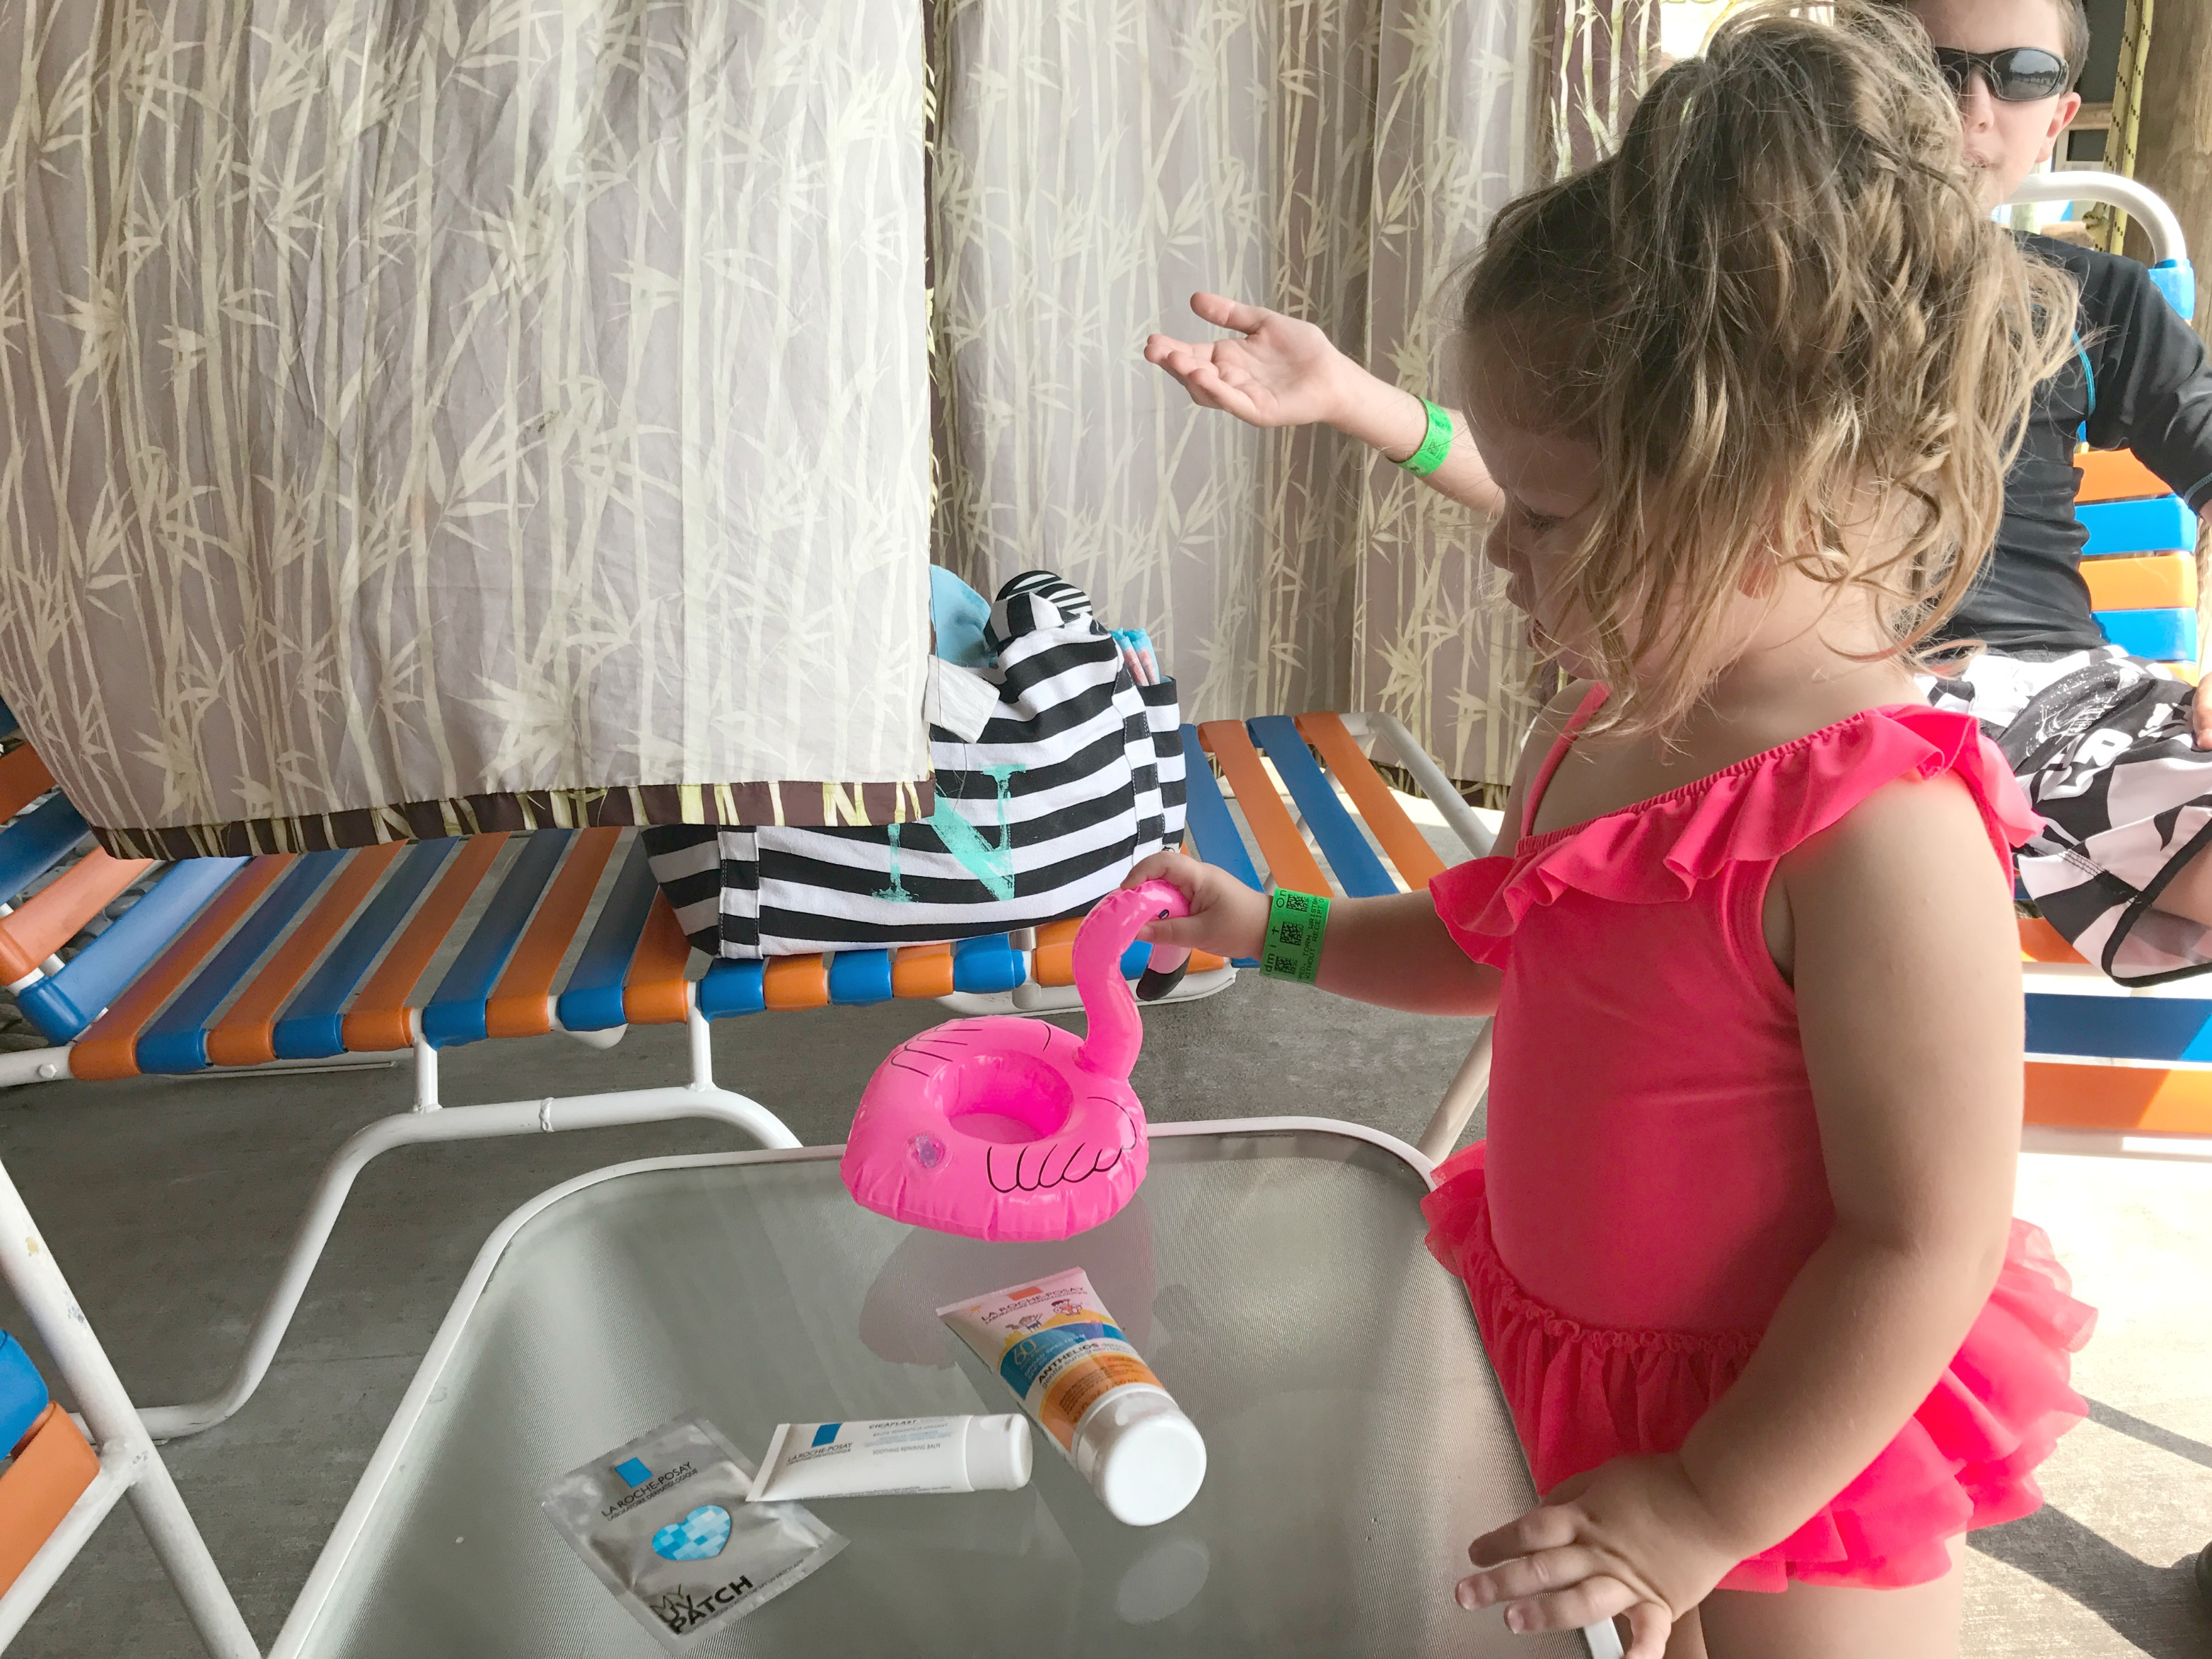 Tips to Practice Sun Safety Tips Together as a Family